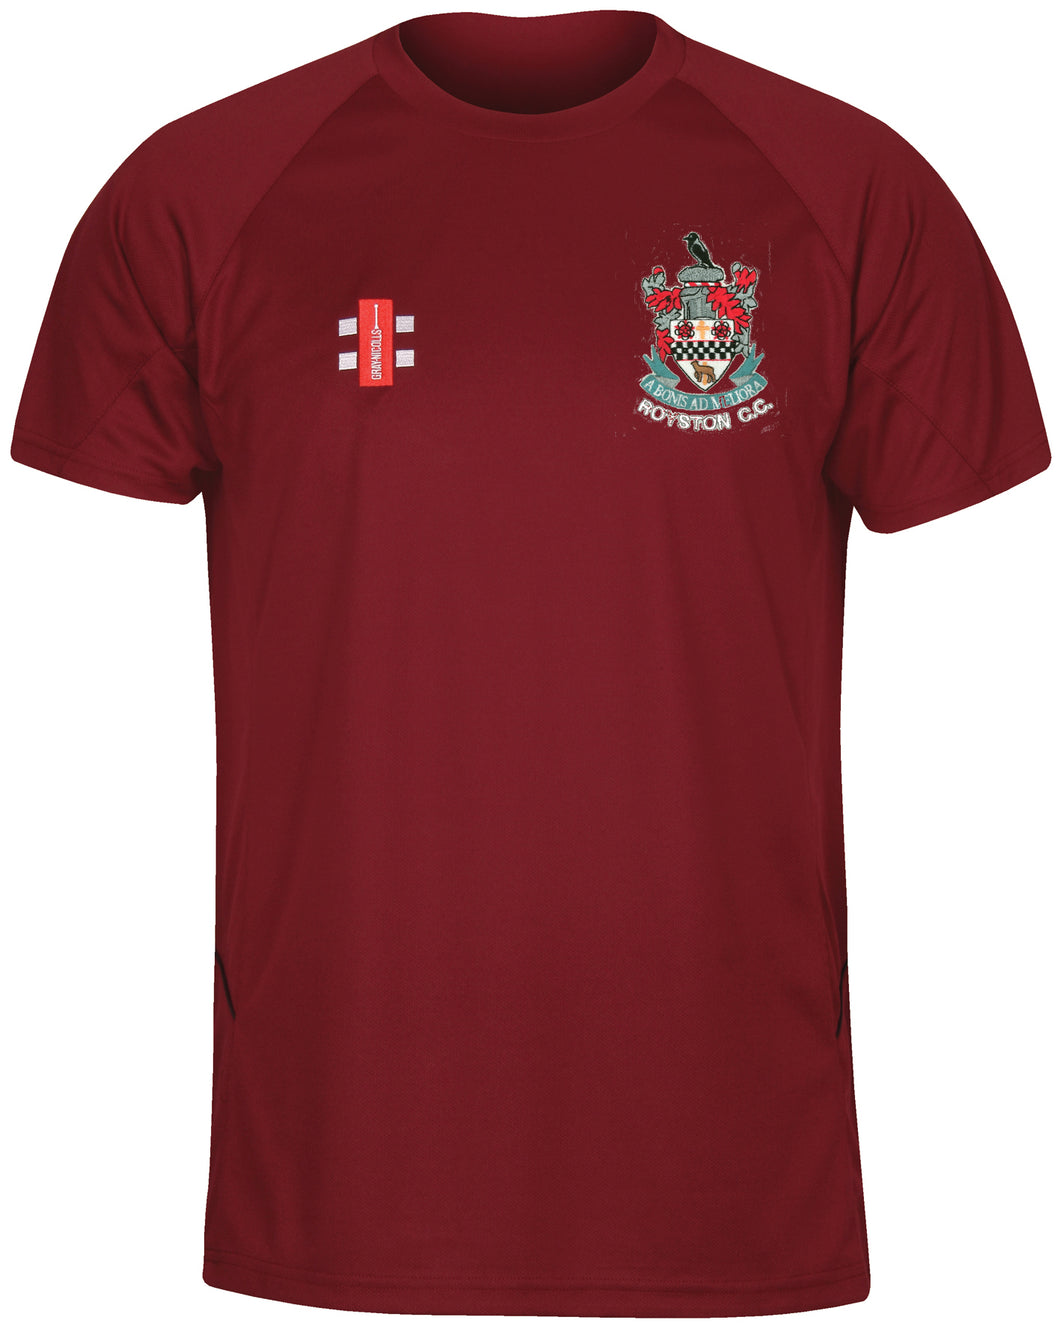 Royston CC Senior Matrix T-Shirt - The Incredible Cricket Company